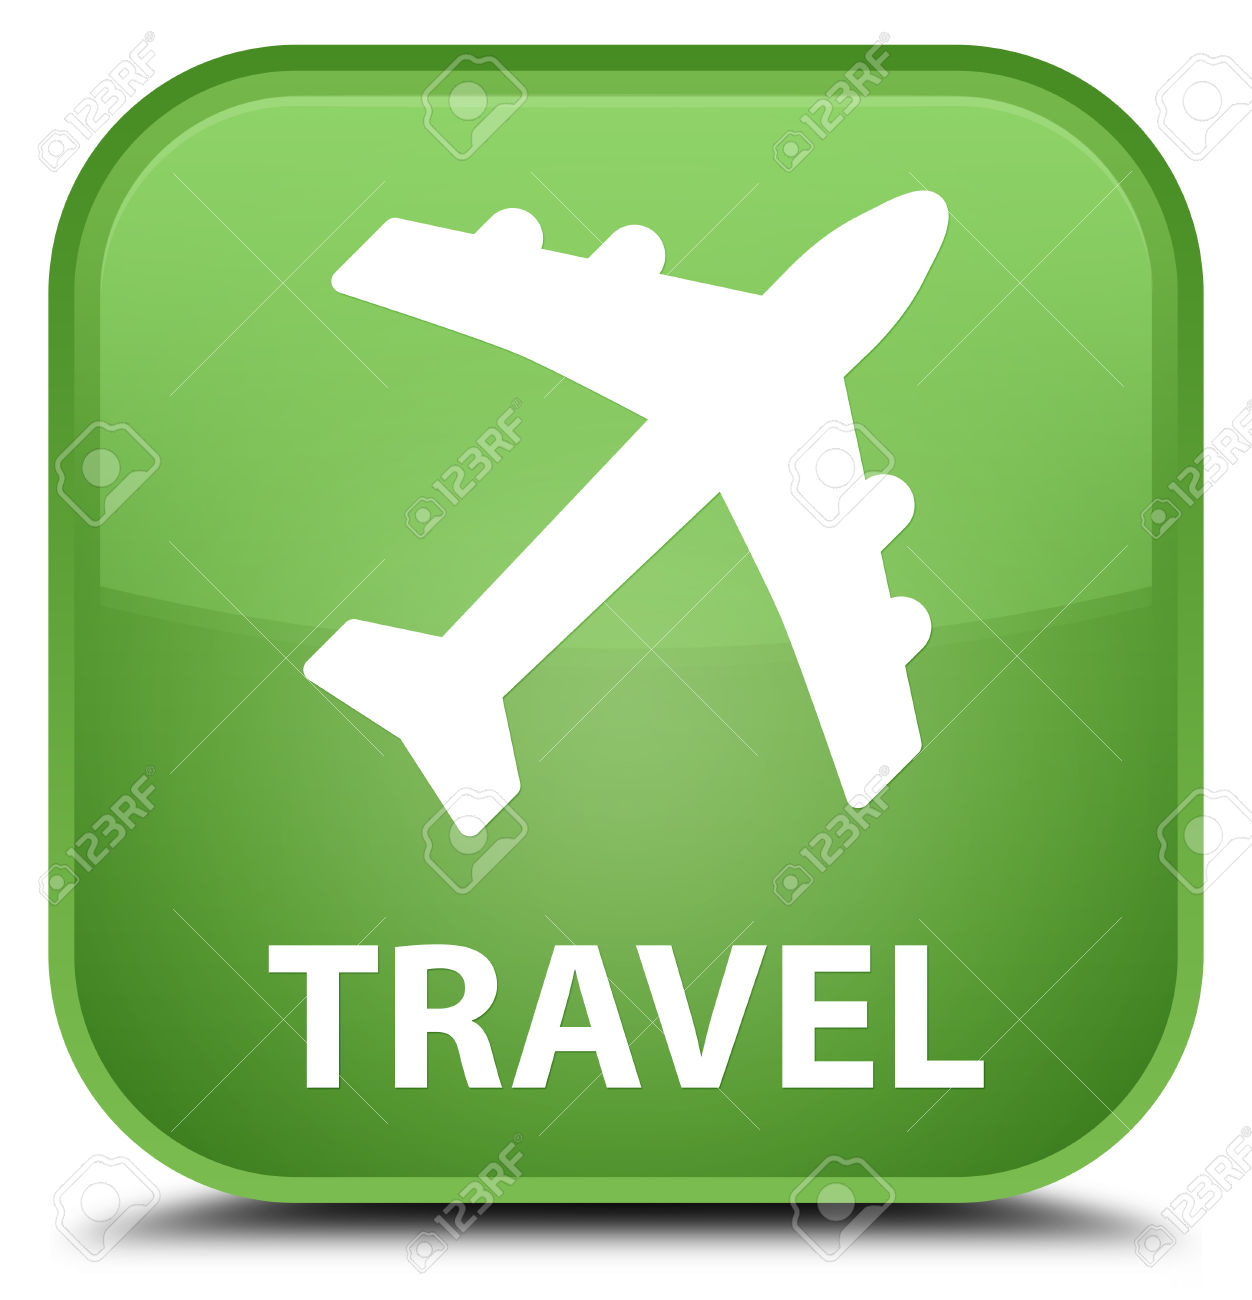 Plane clipart square jpg royalty free stock Travel (plane Icon) Soft Green Square Button Stock Photo, Picture ... jpg royalty free stock